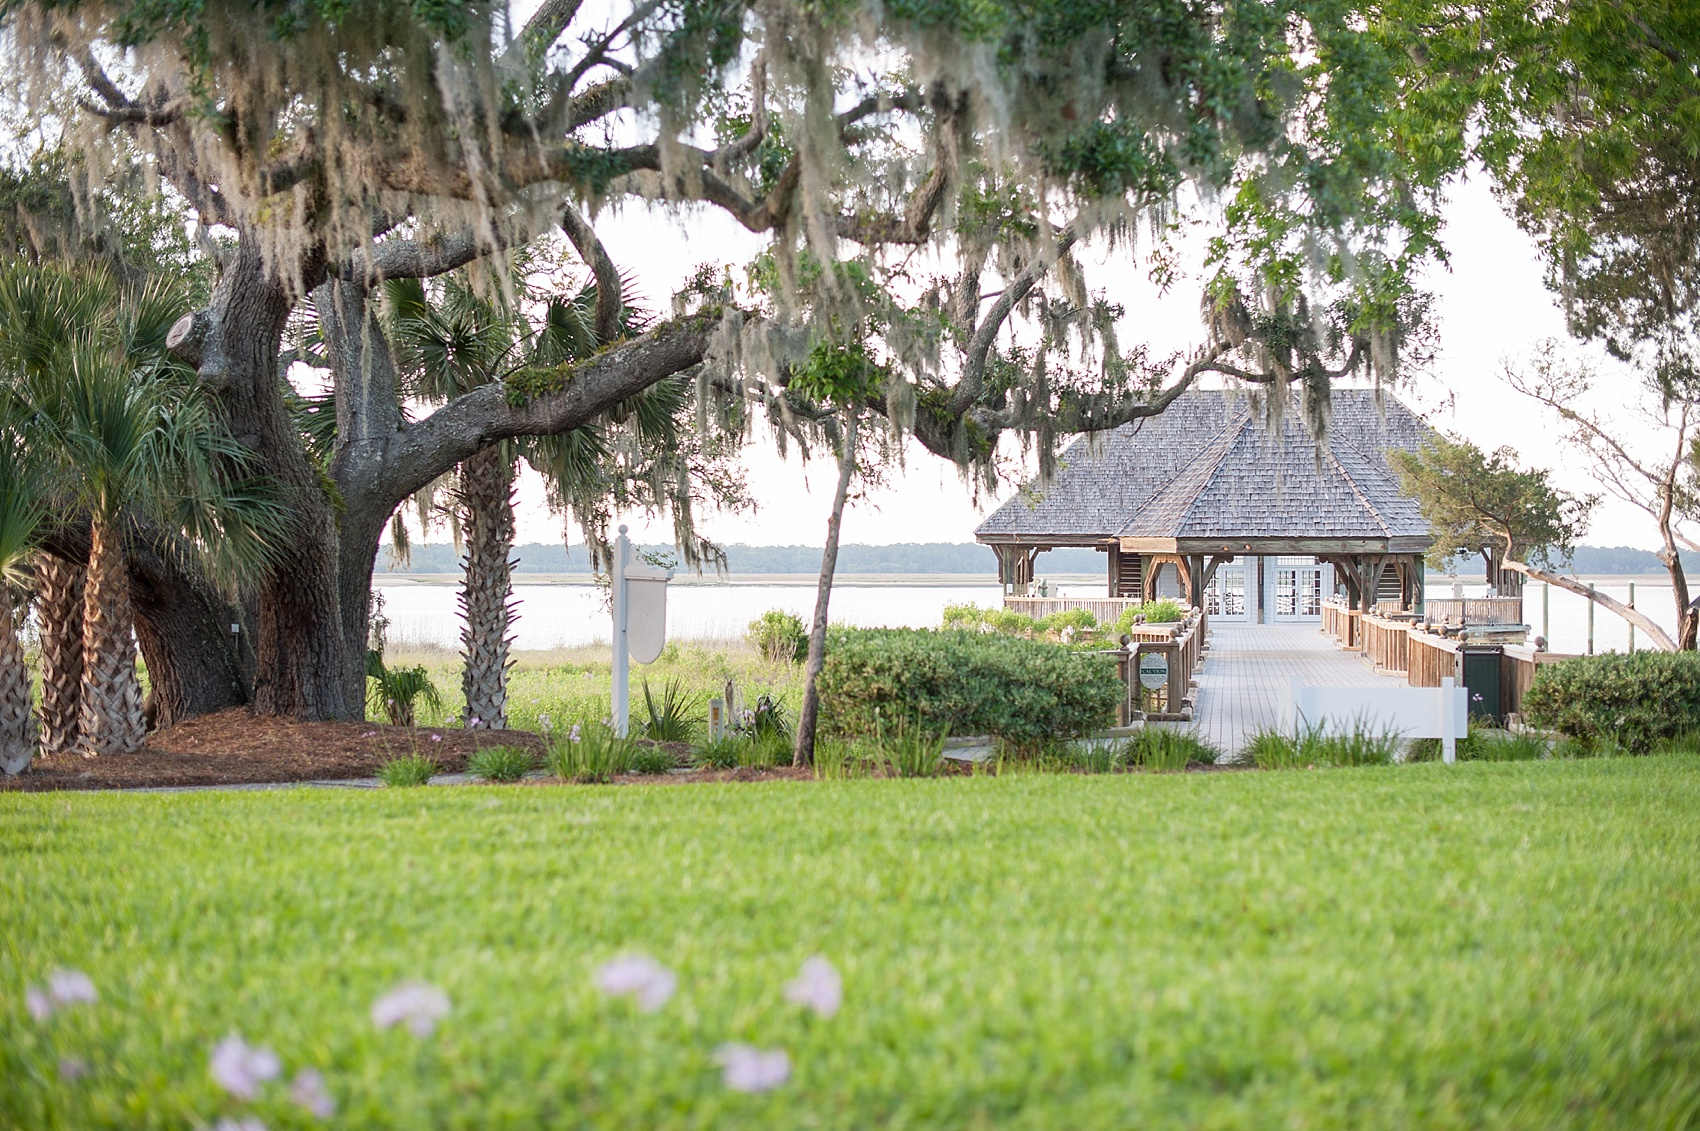 Wedding at Haig Point in South Carolina, off the coast of Hilton Head. Photos by Mikkel Paige Photography.